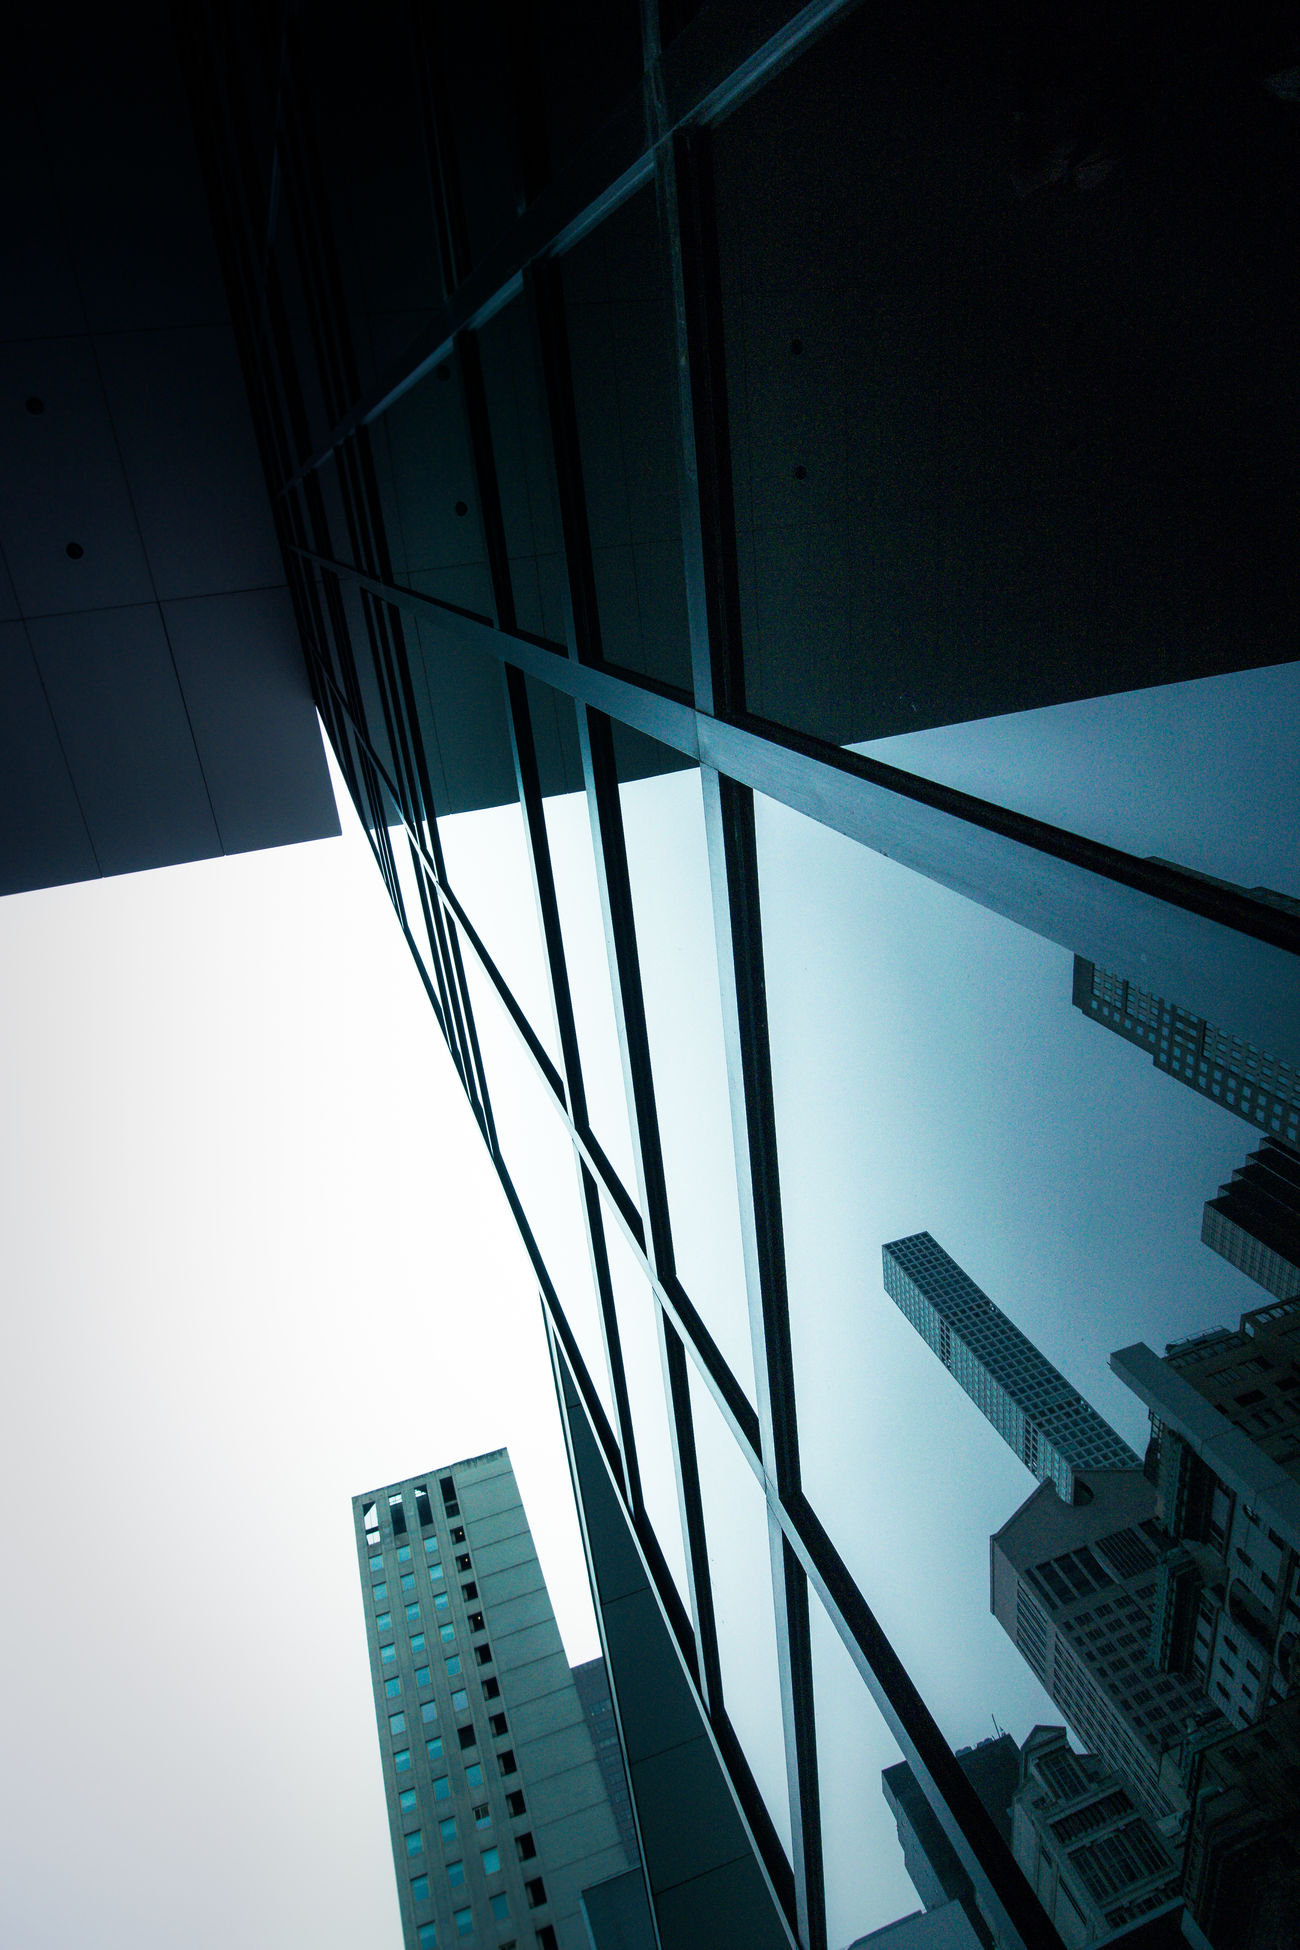 Moma Architecture Building Exterior Built Structure City Cityscape Clear Sky Corporate Business Day Growth Low Angle View Minimalism Modern No People Outdoors Reflection Sky Skyscraper Tall The Architect - 2017 EyeEm Awards